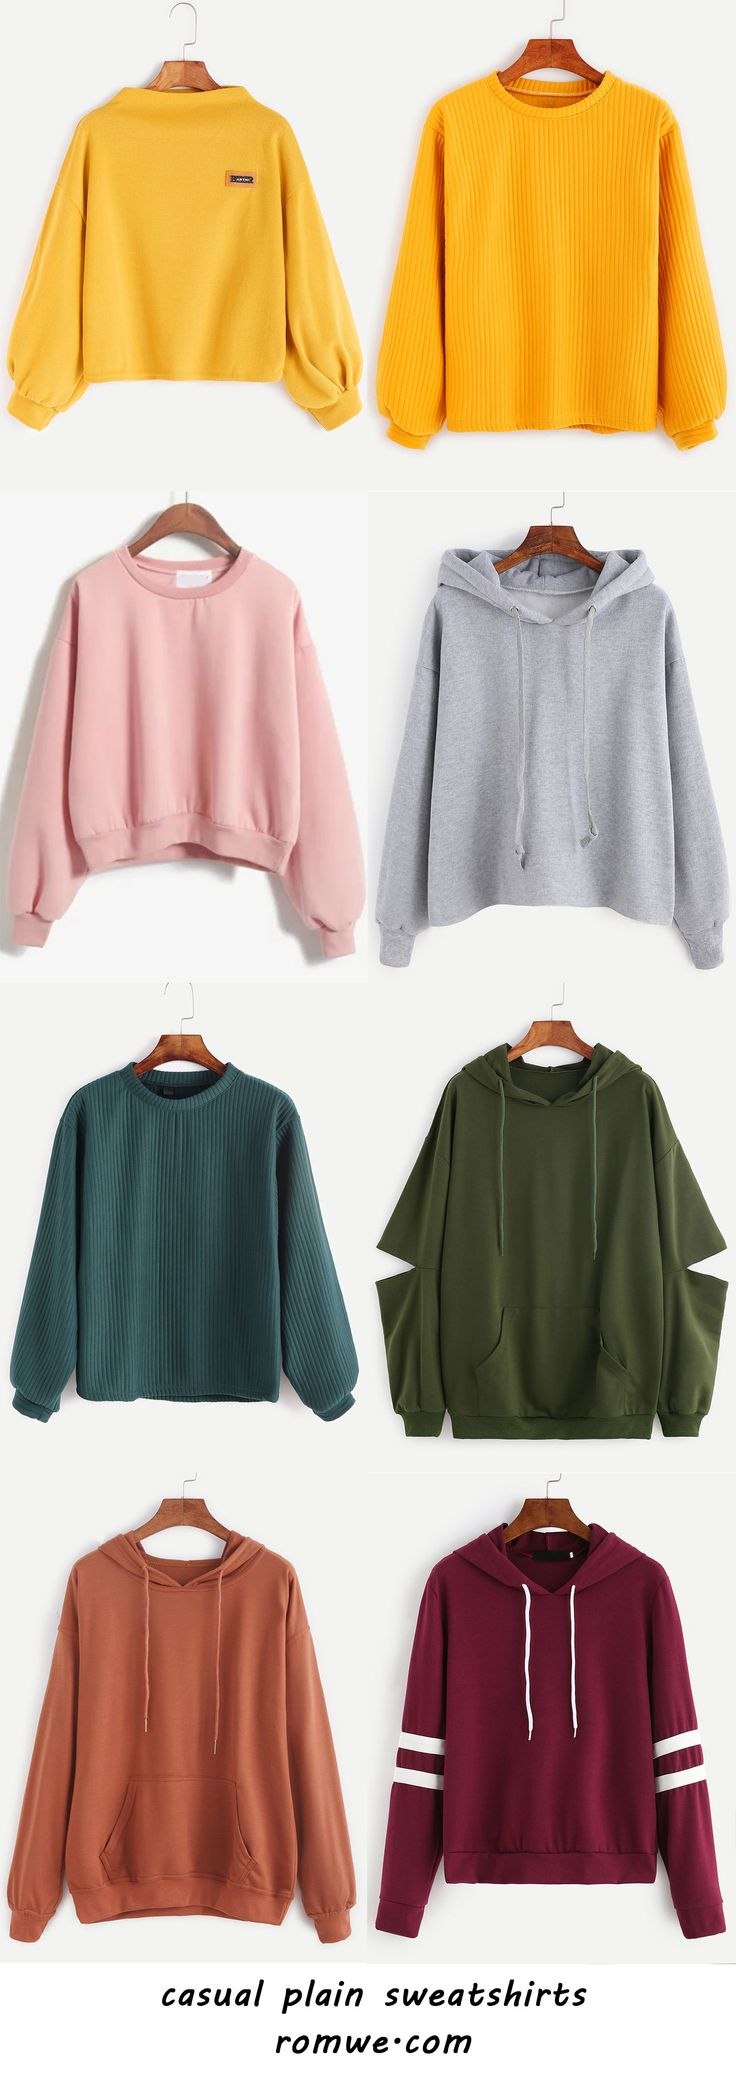 plain sweatshirts with great material and reasonable price from romwe.com